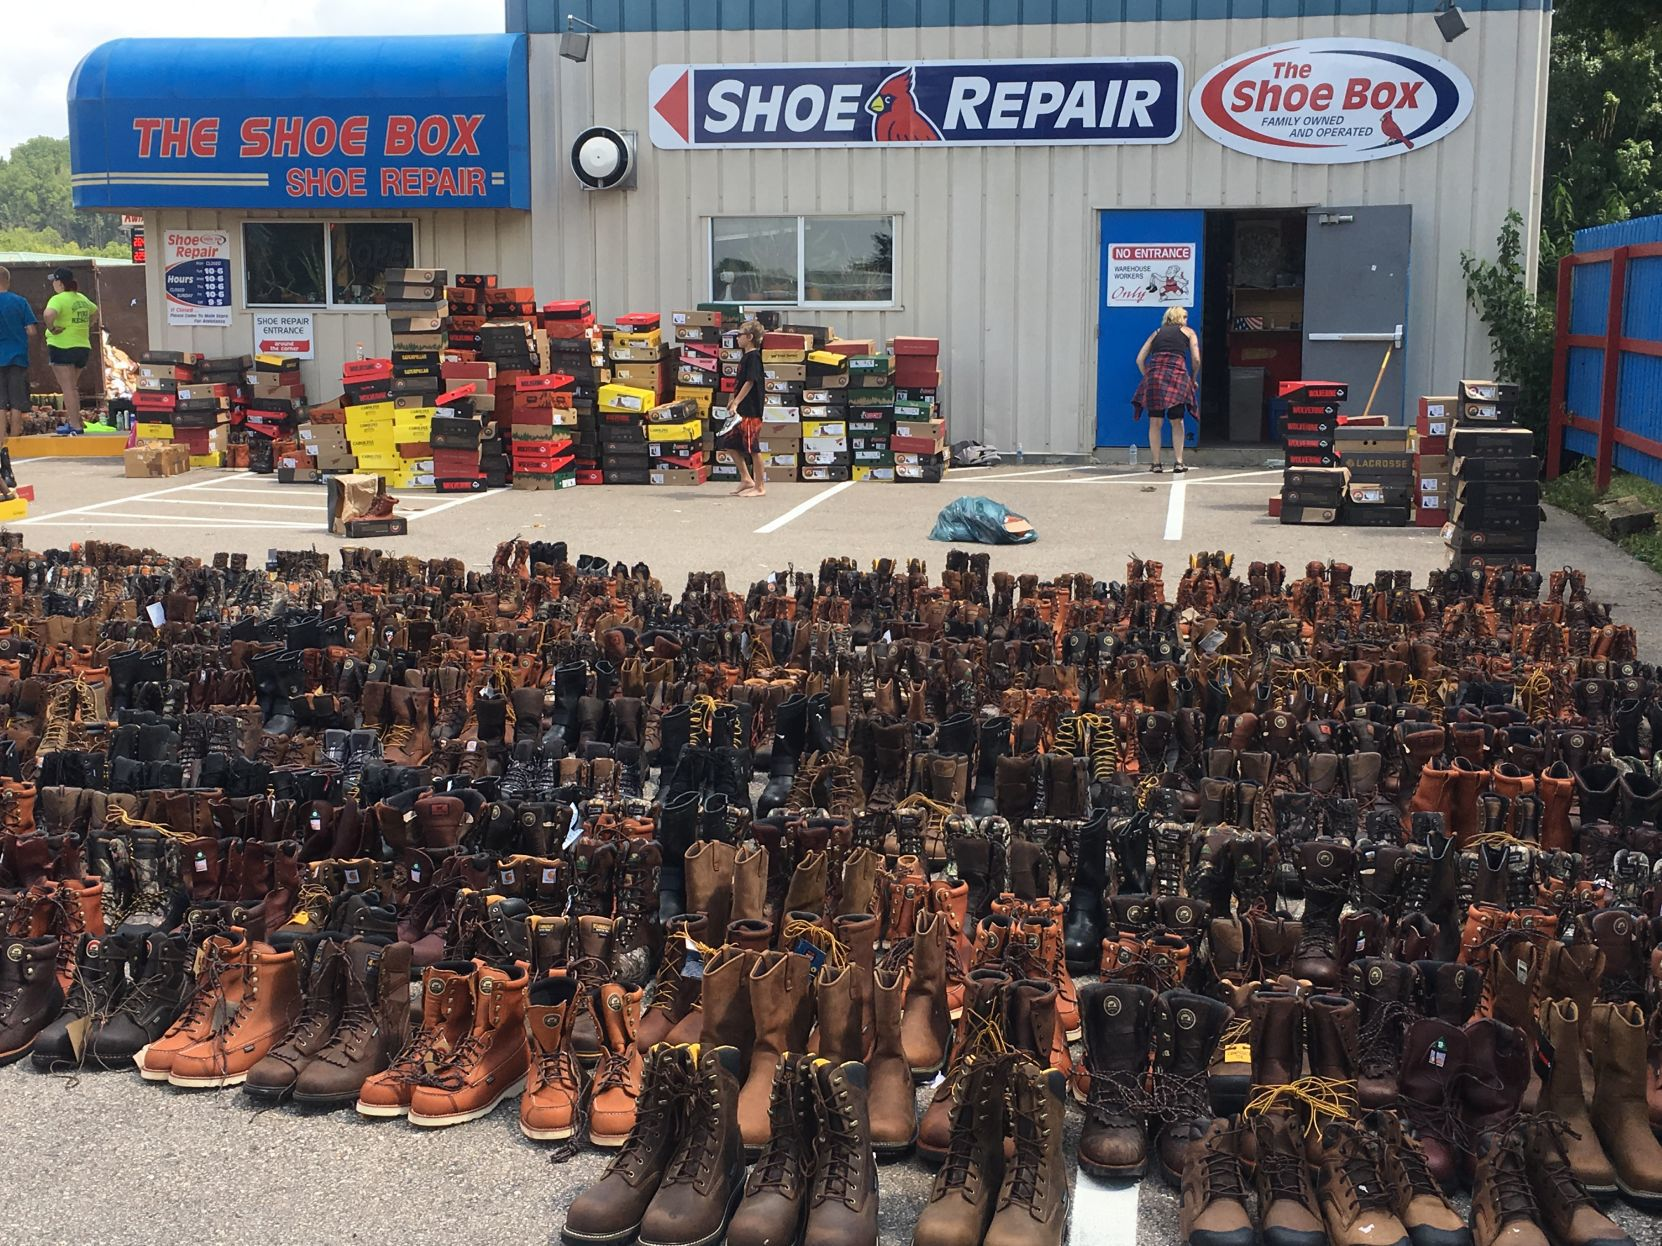 Black Earth's Shoe Box back in business